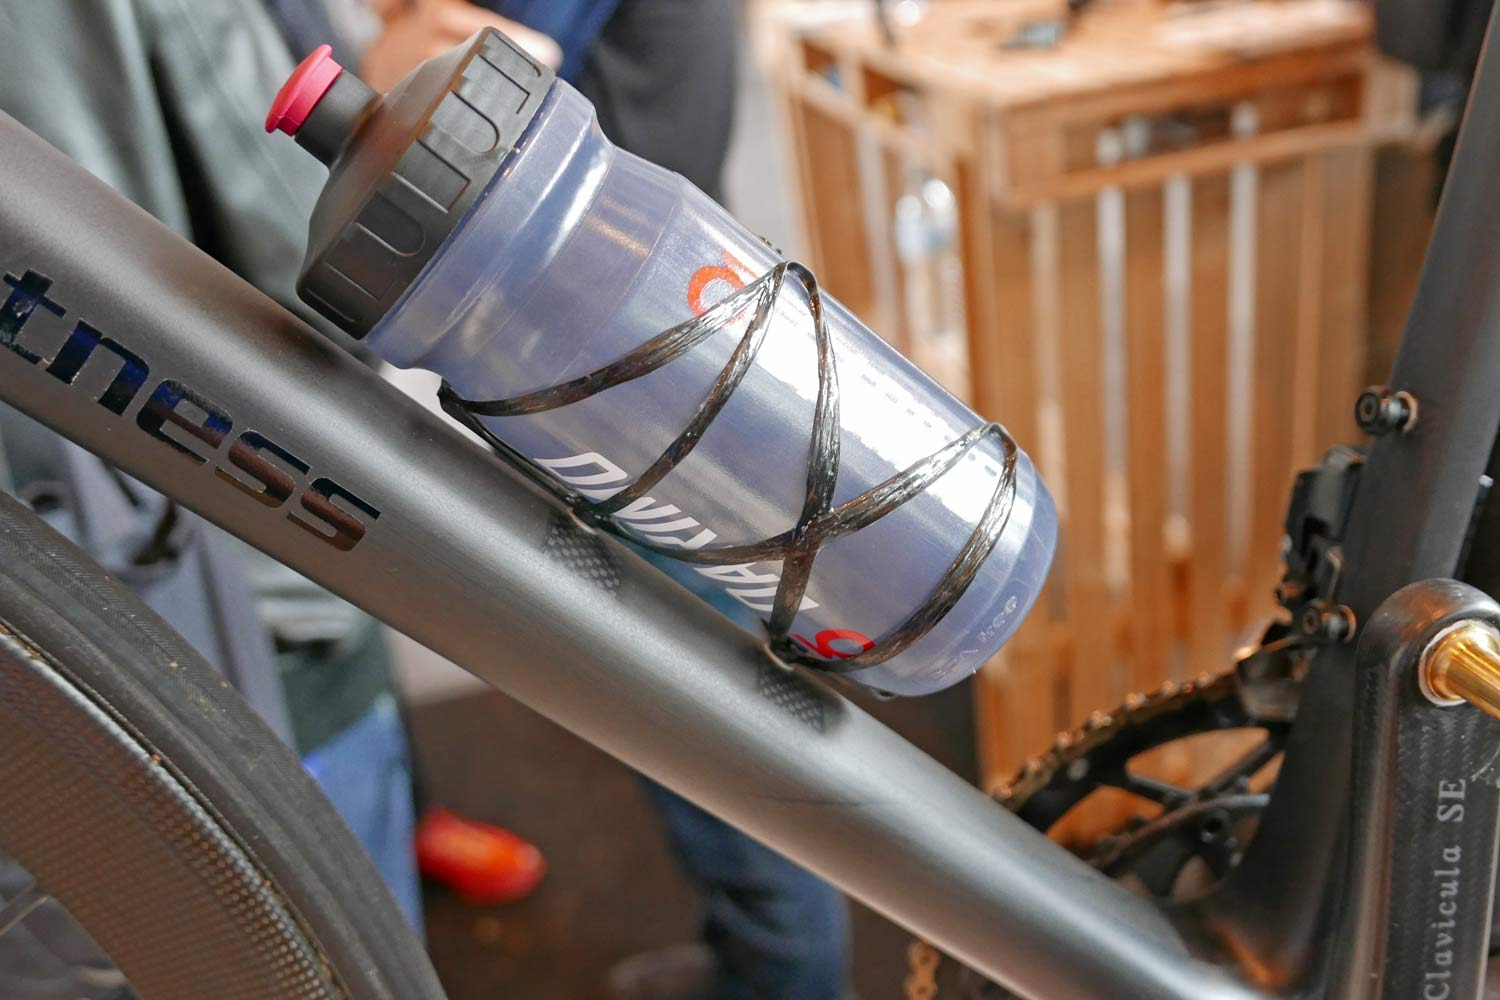 Prototype Darimo ultralight carbon water bottle cage